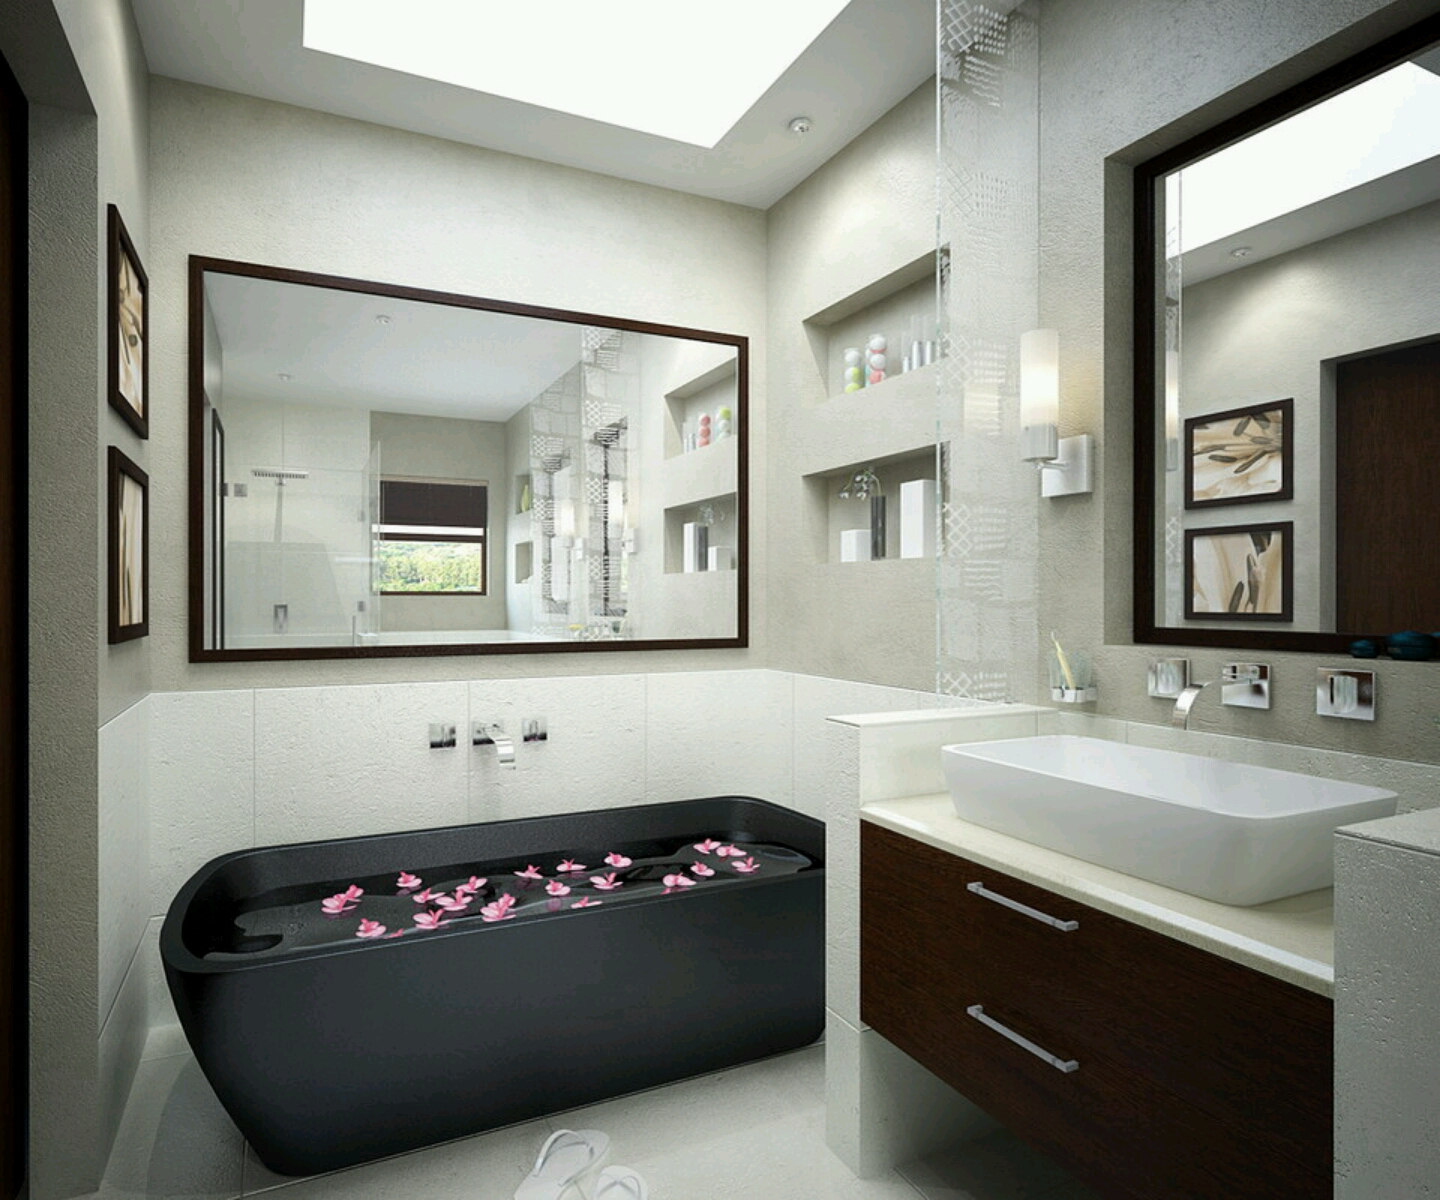 Modern bathrooms cabinets designs furniture gallery for Pictures of new bathrooms